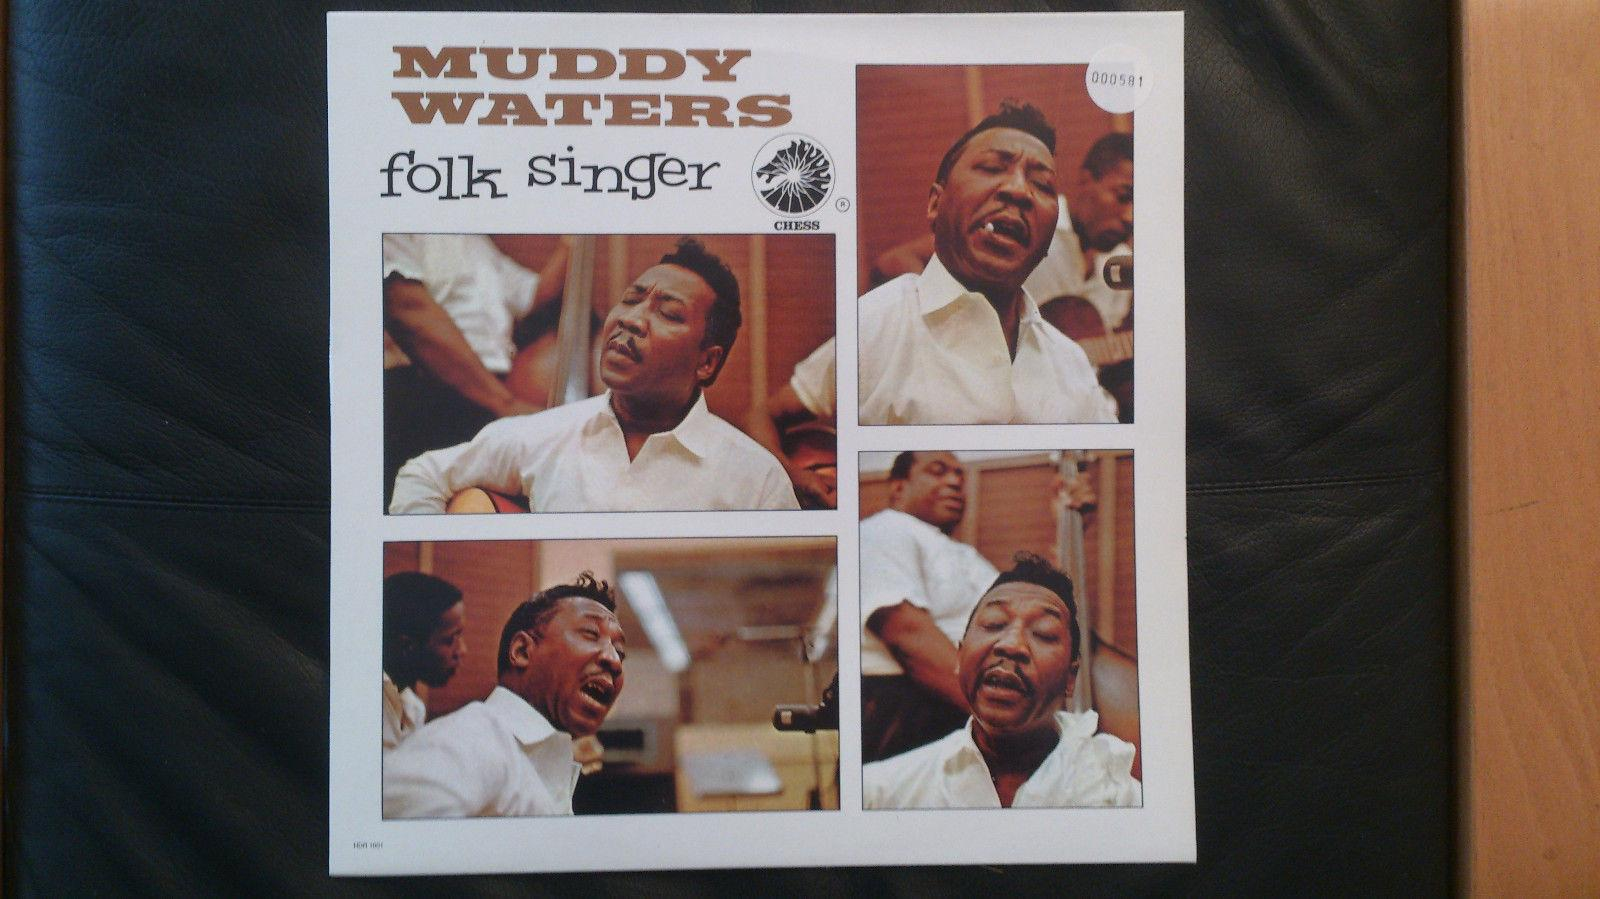 Muddy Waters  LP/ Vinyl / Folk Singer / Chess  HDR 1001 UK Print ( limitiert )